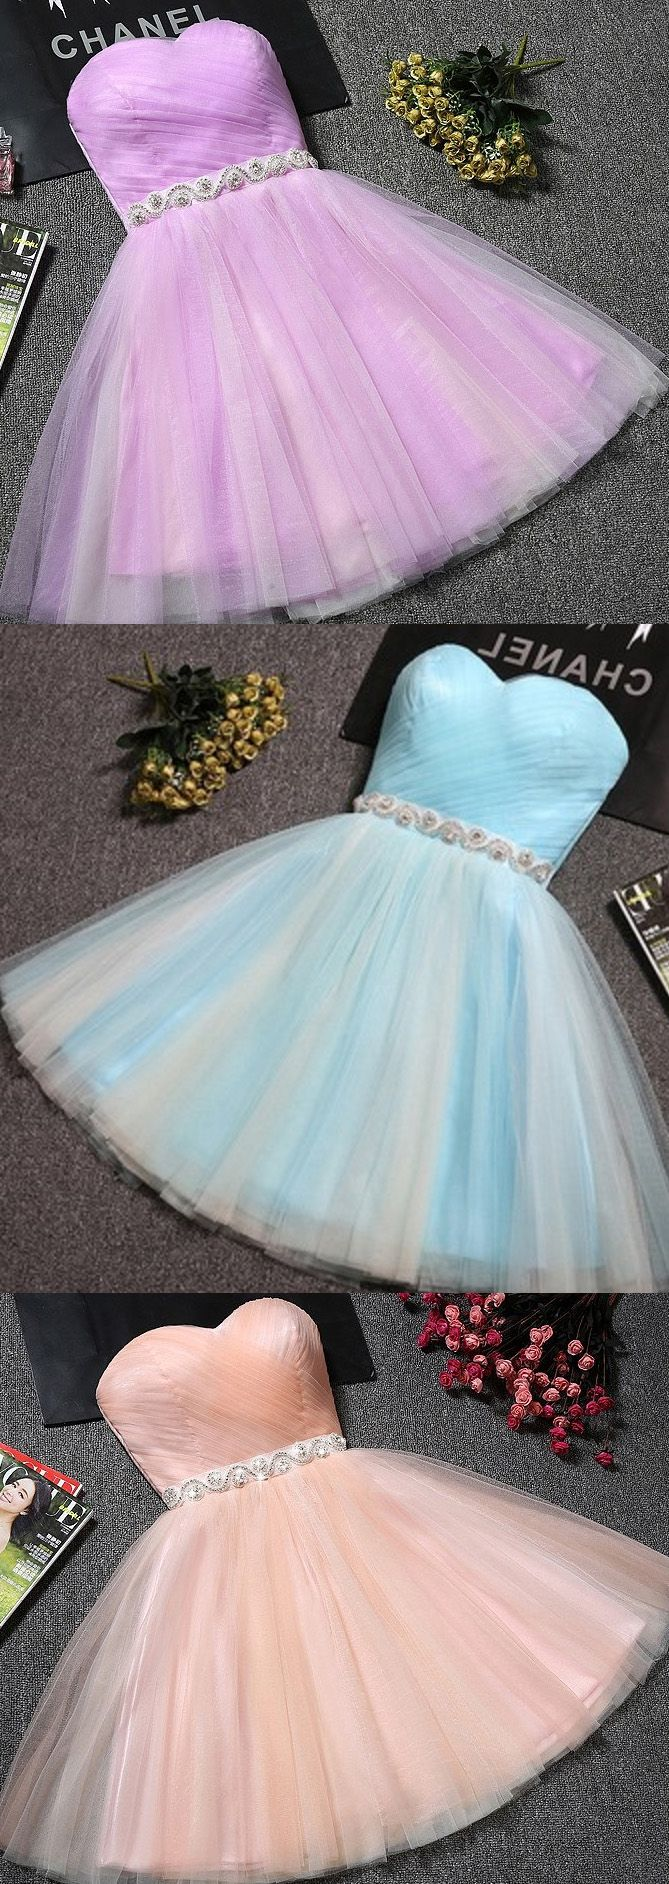 Sleeveless party prom dress short light blue party dresses with lace